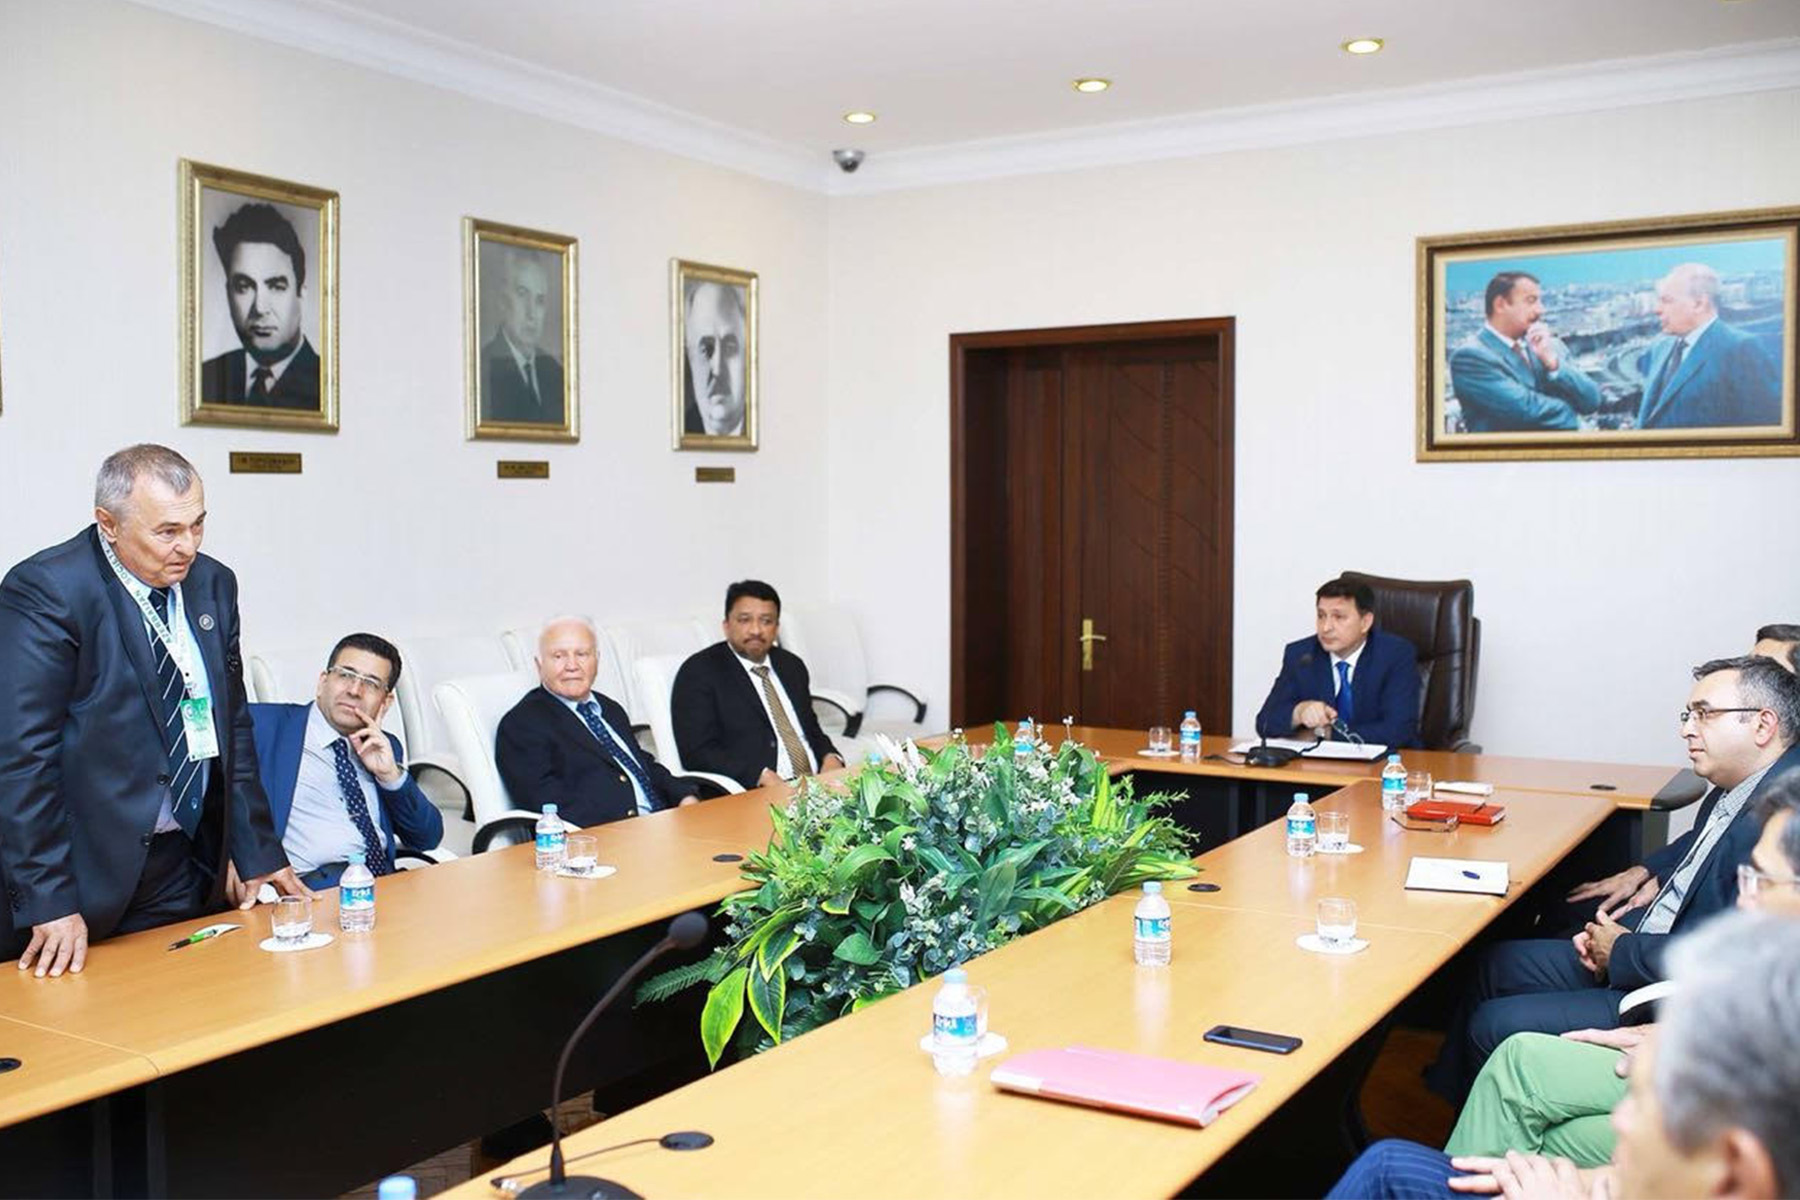 Dr SM Balaji during his meeting with the Rector of Azerbaycan Tibb Universiteti, His Excellency Dr Garay Chingiz Garaybayli